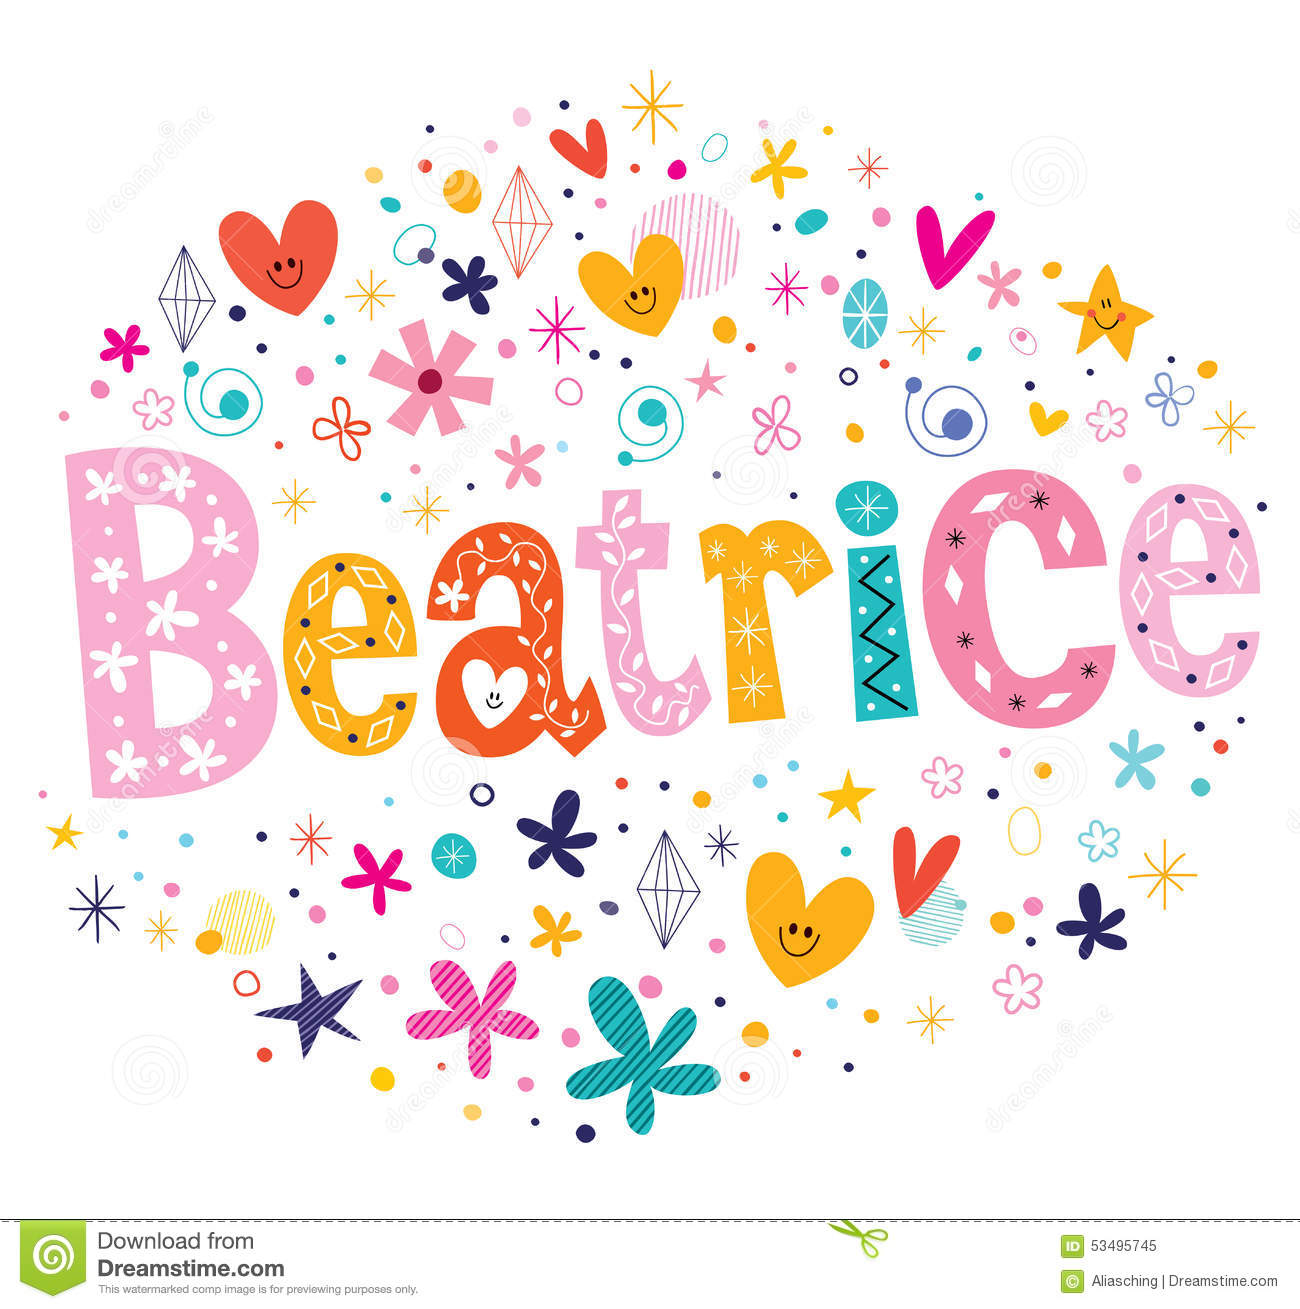 Beatrice (given name) #